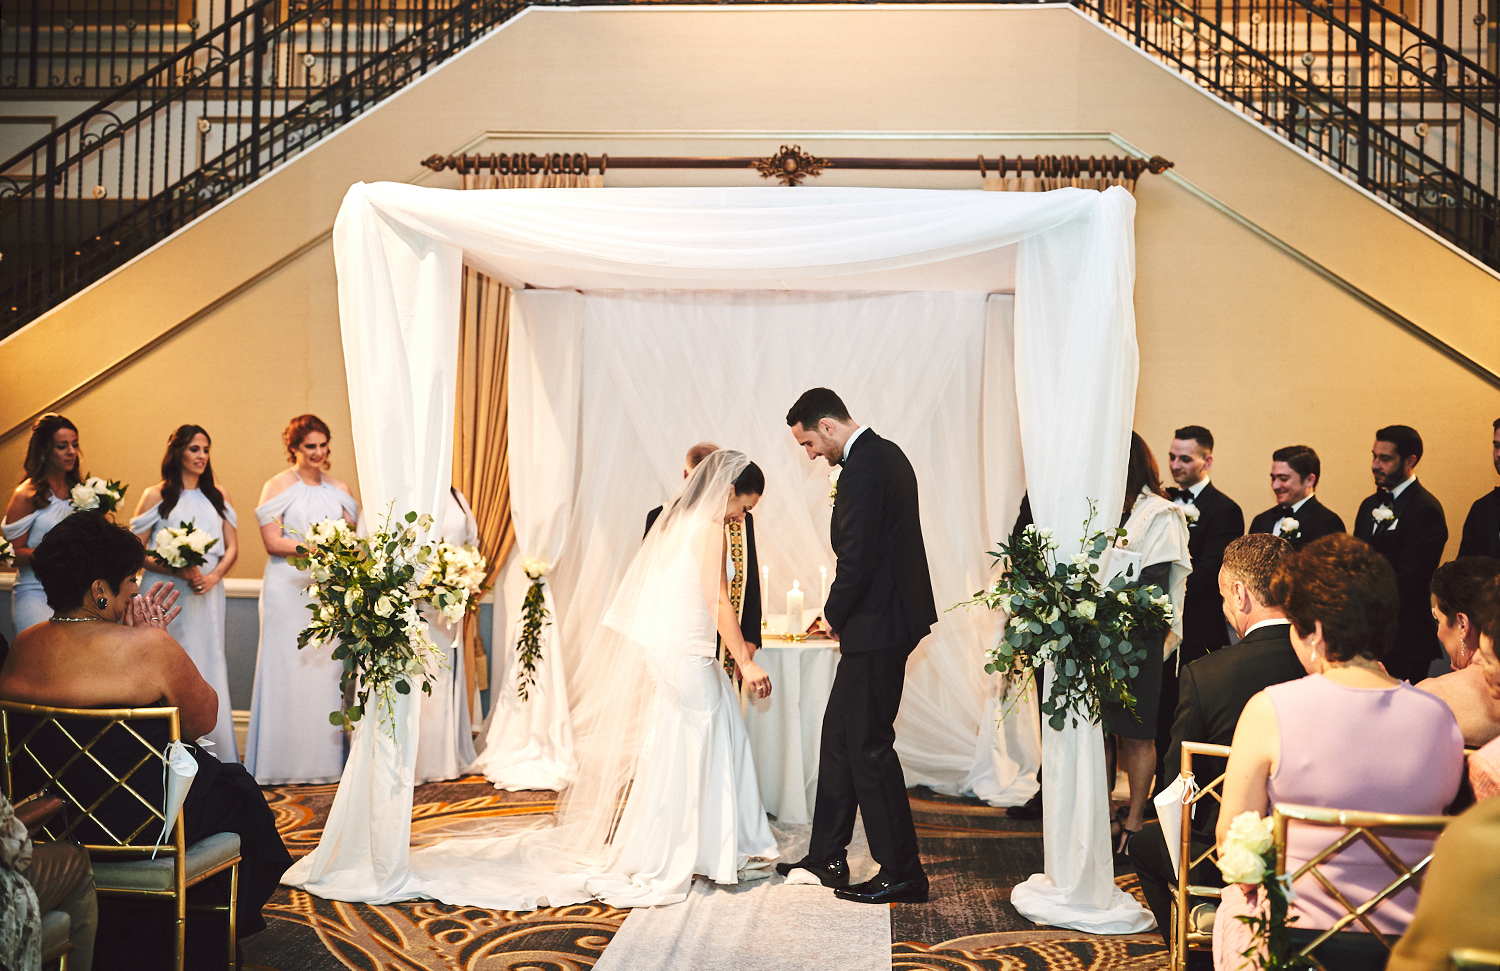 180519_PalaceatSomersetParkWeddingPhotography_NJWeddingPhotographer_By_BriJohnsonWeddings_0113.jpg